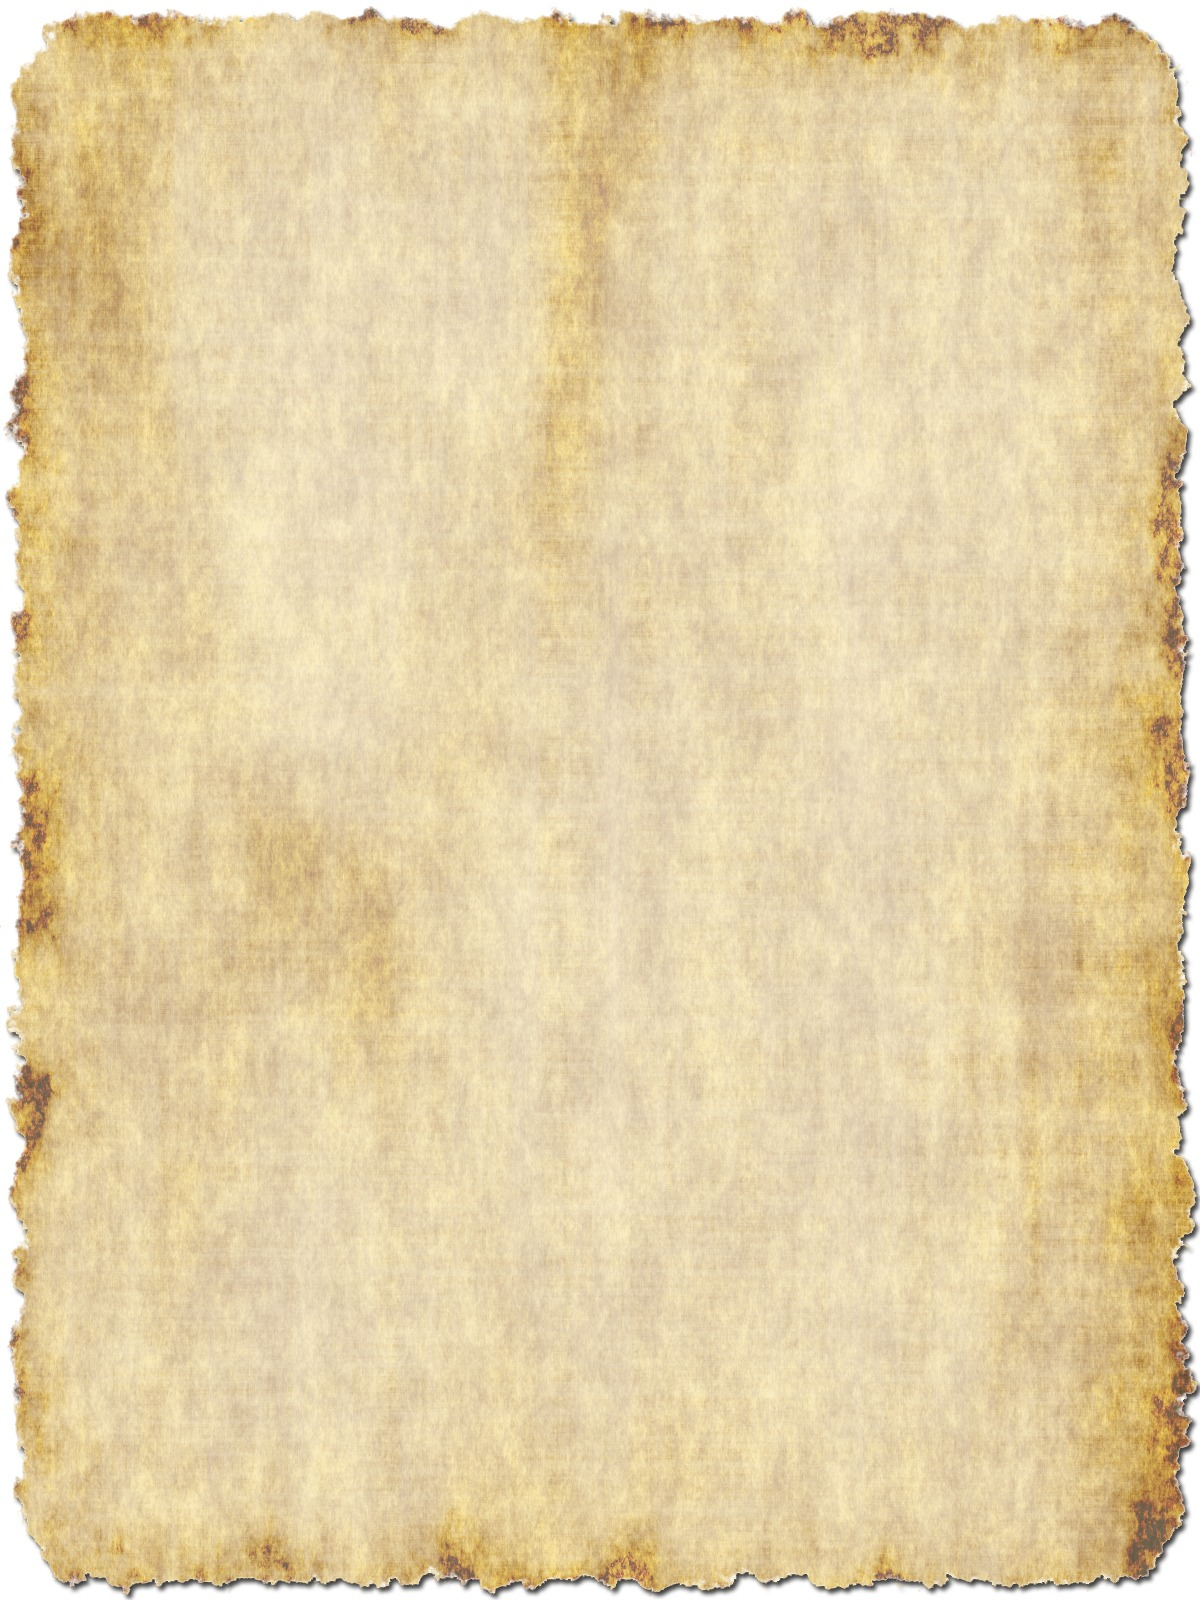 (3) Parchment textures | Check This Out!